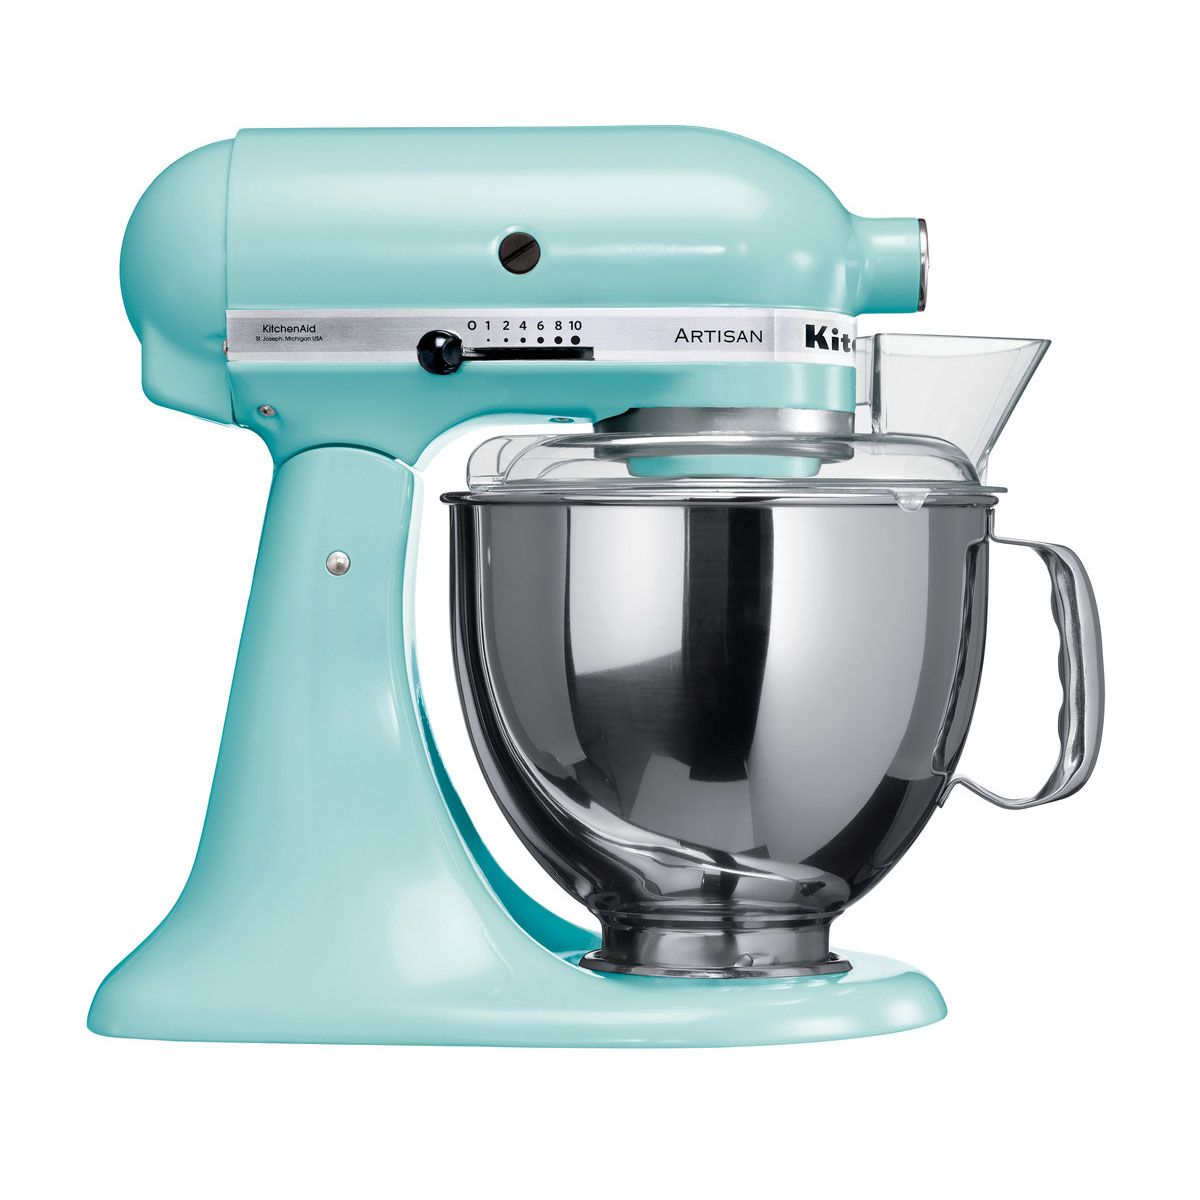 KitchenAid Artisan in Eisblau (5KSM150PSEIC) | Küche | Pinterest ...